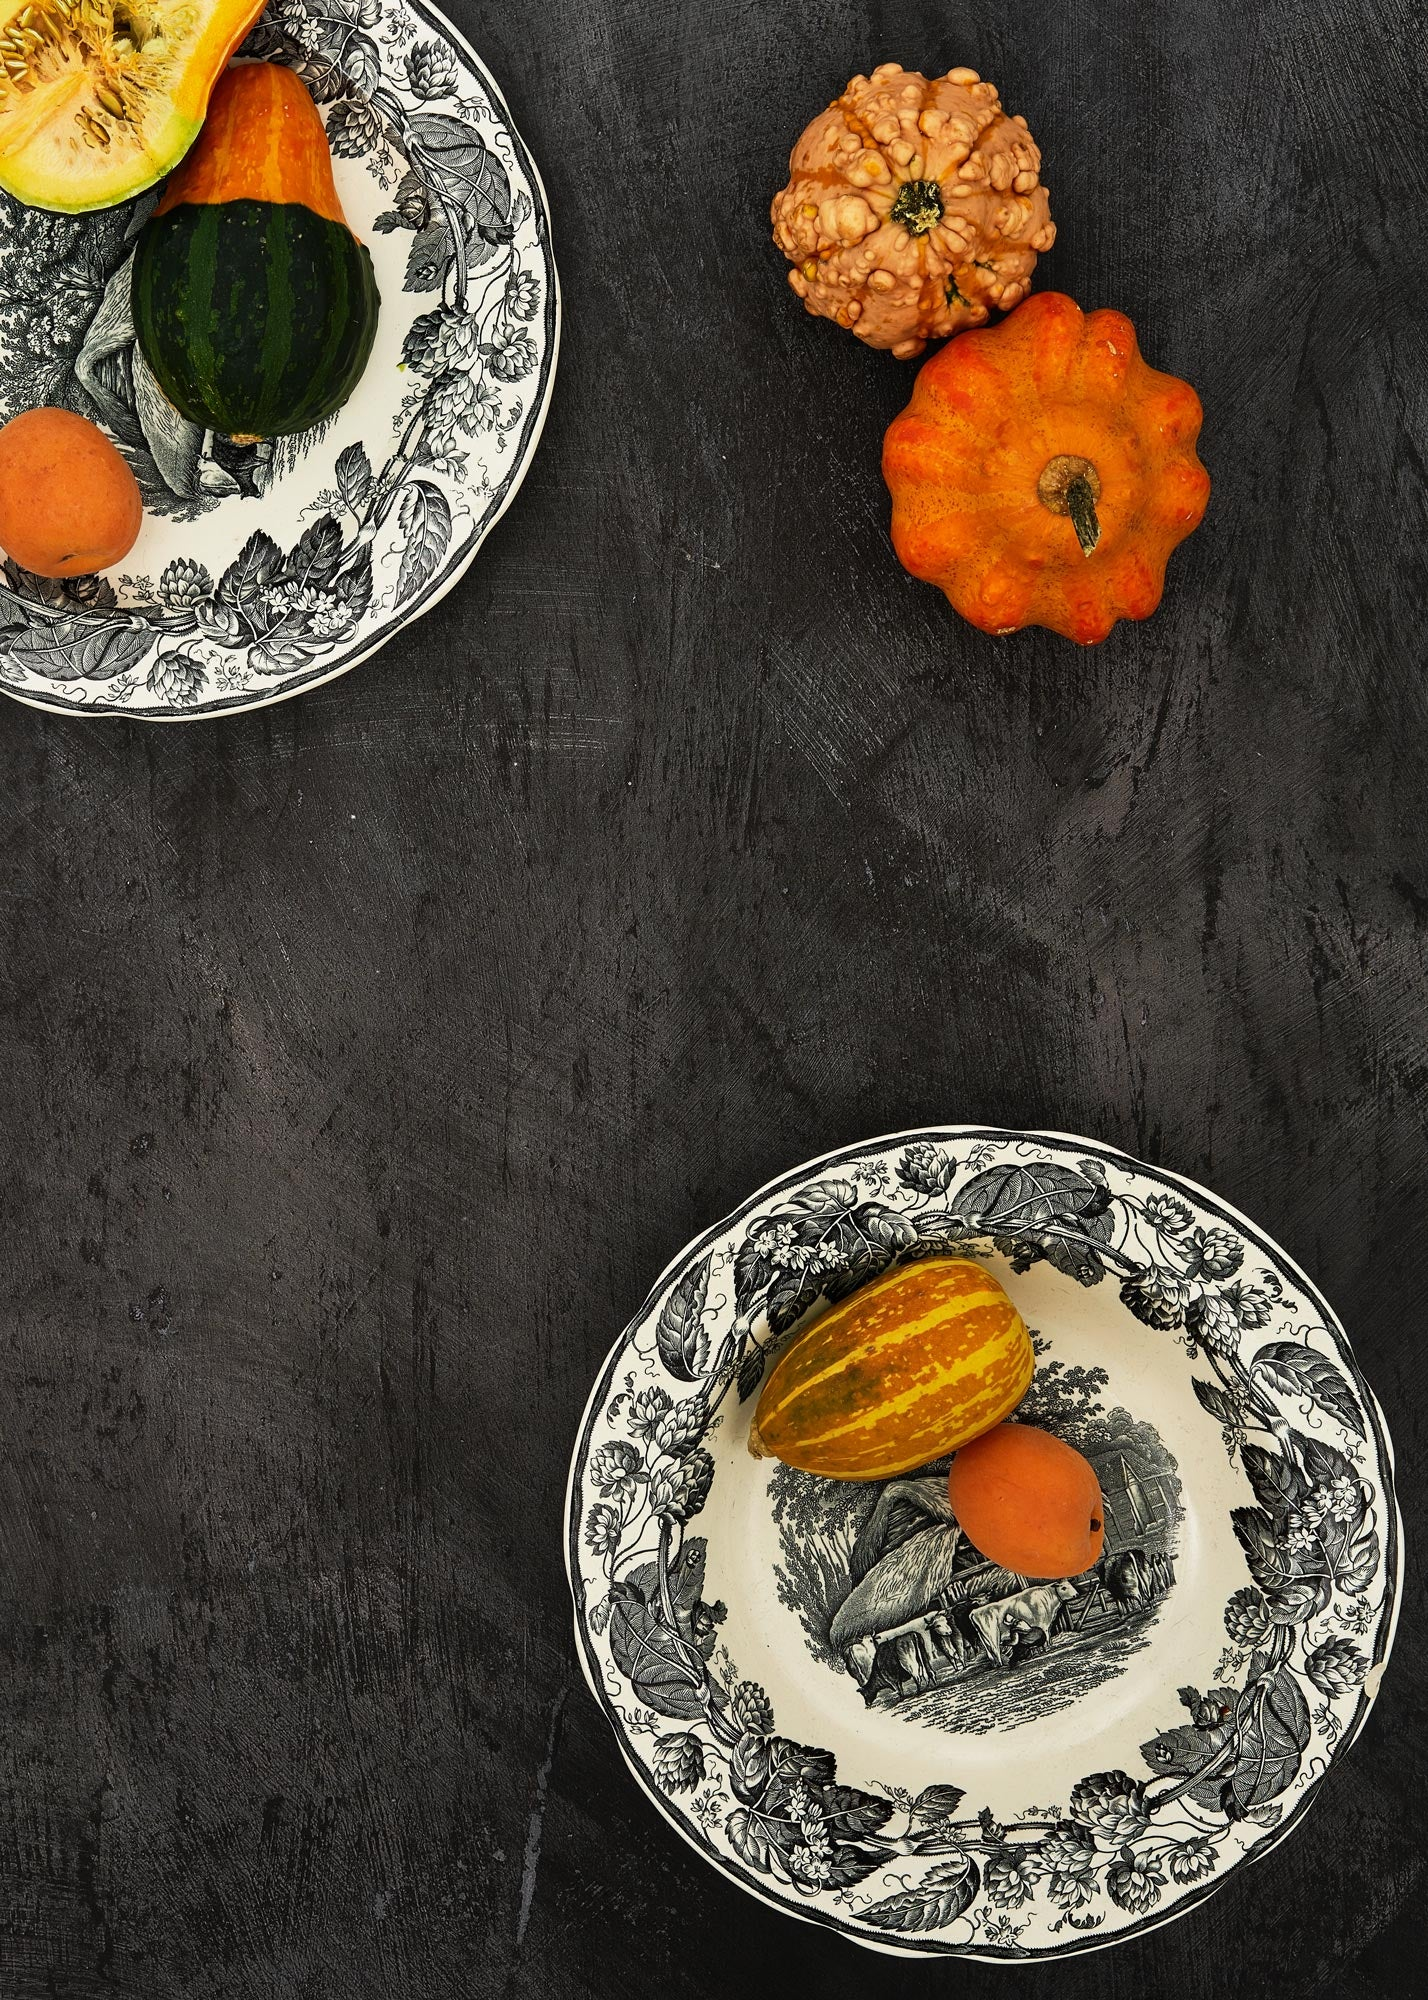 Dark vinyl backdrop used in food photography